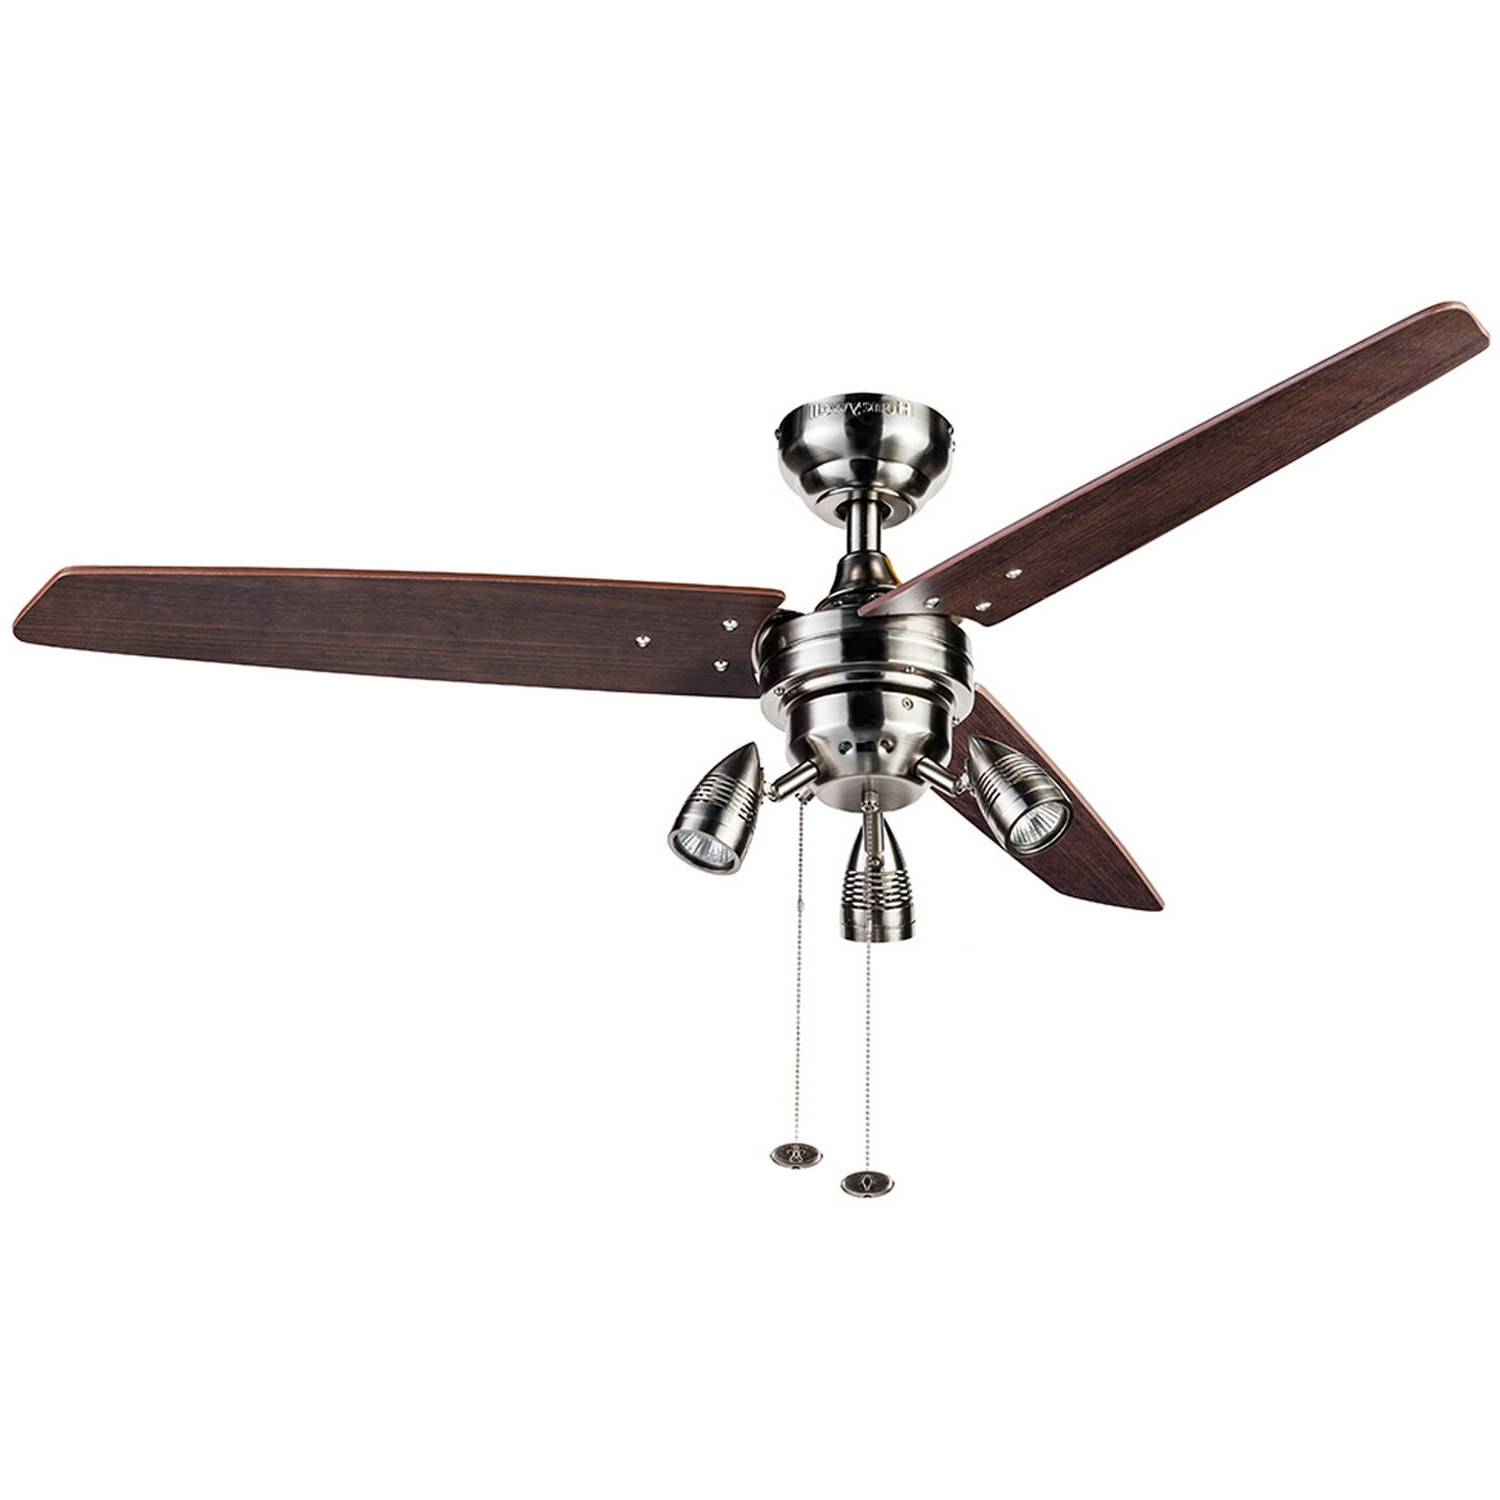 2019 Ceiling: Marvellous Wicker Ceiling Fans Design Coastal Style Ceiling Inside Wicker Outdoor Ceiling Fans (View 11 of 20)